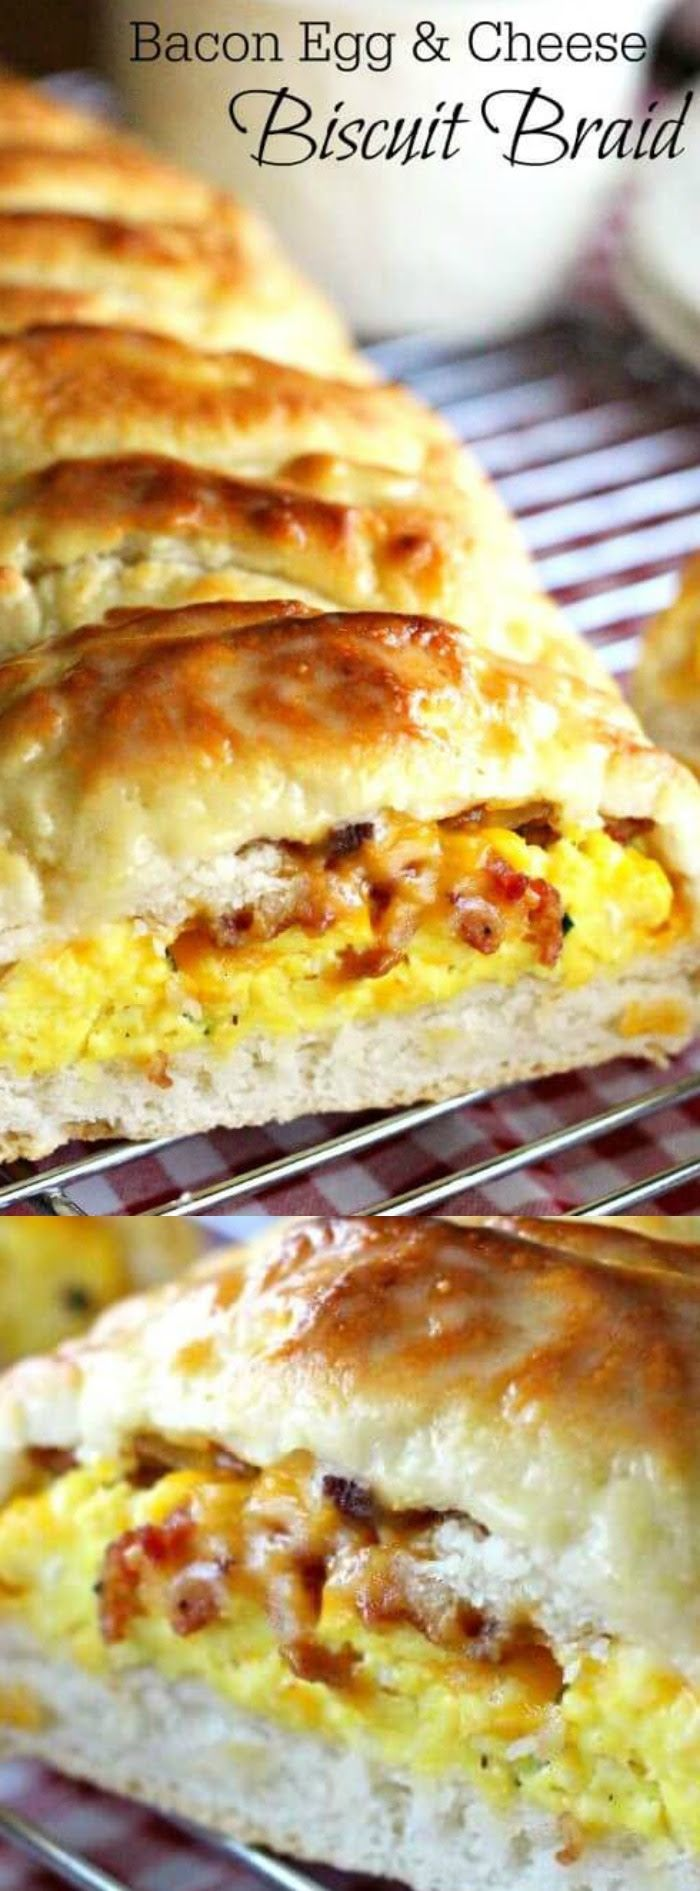 Bacon Egg & Cheese Biscuit Braid